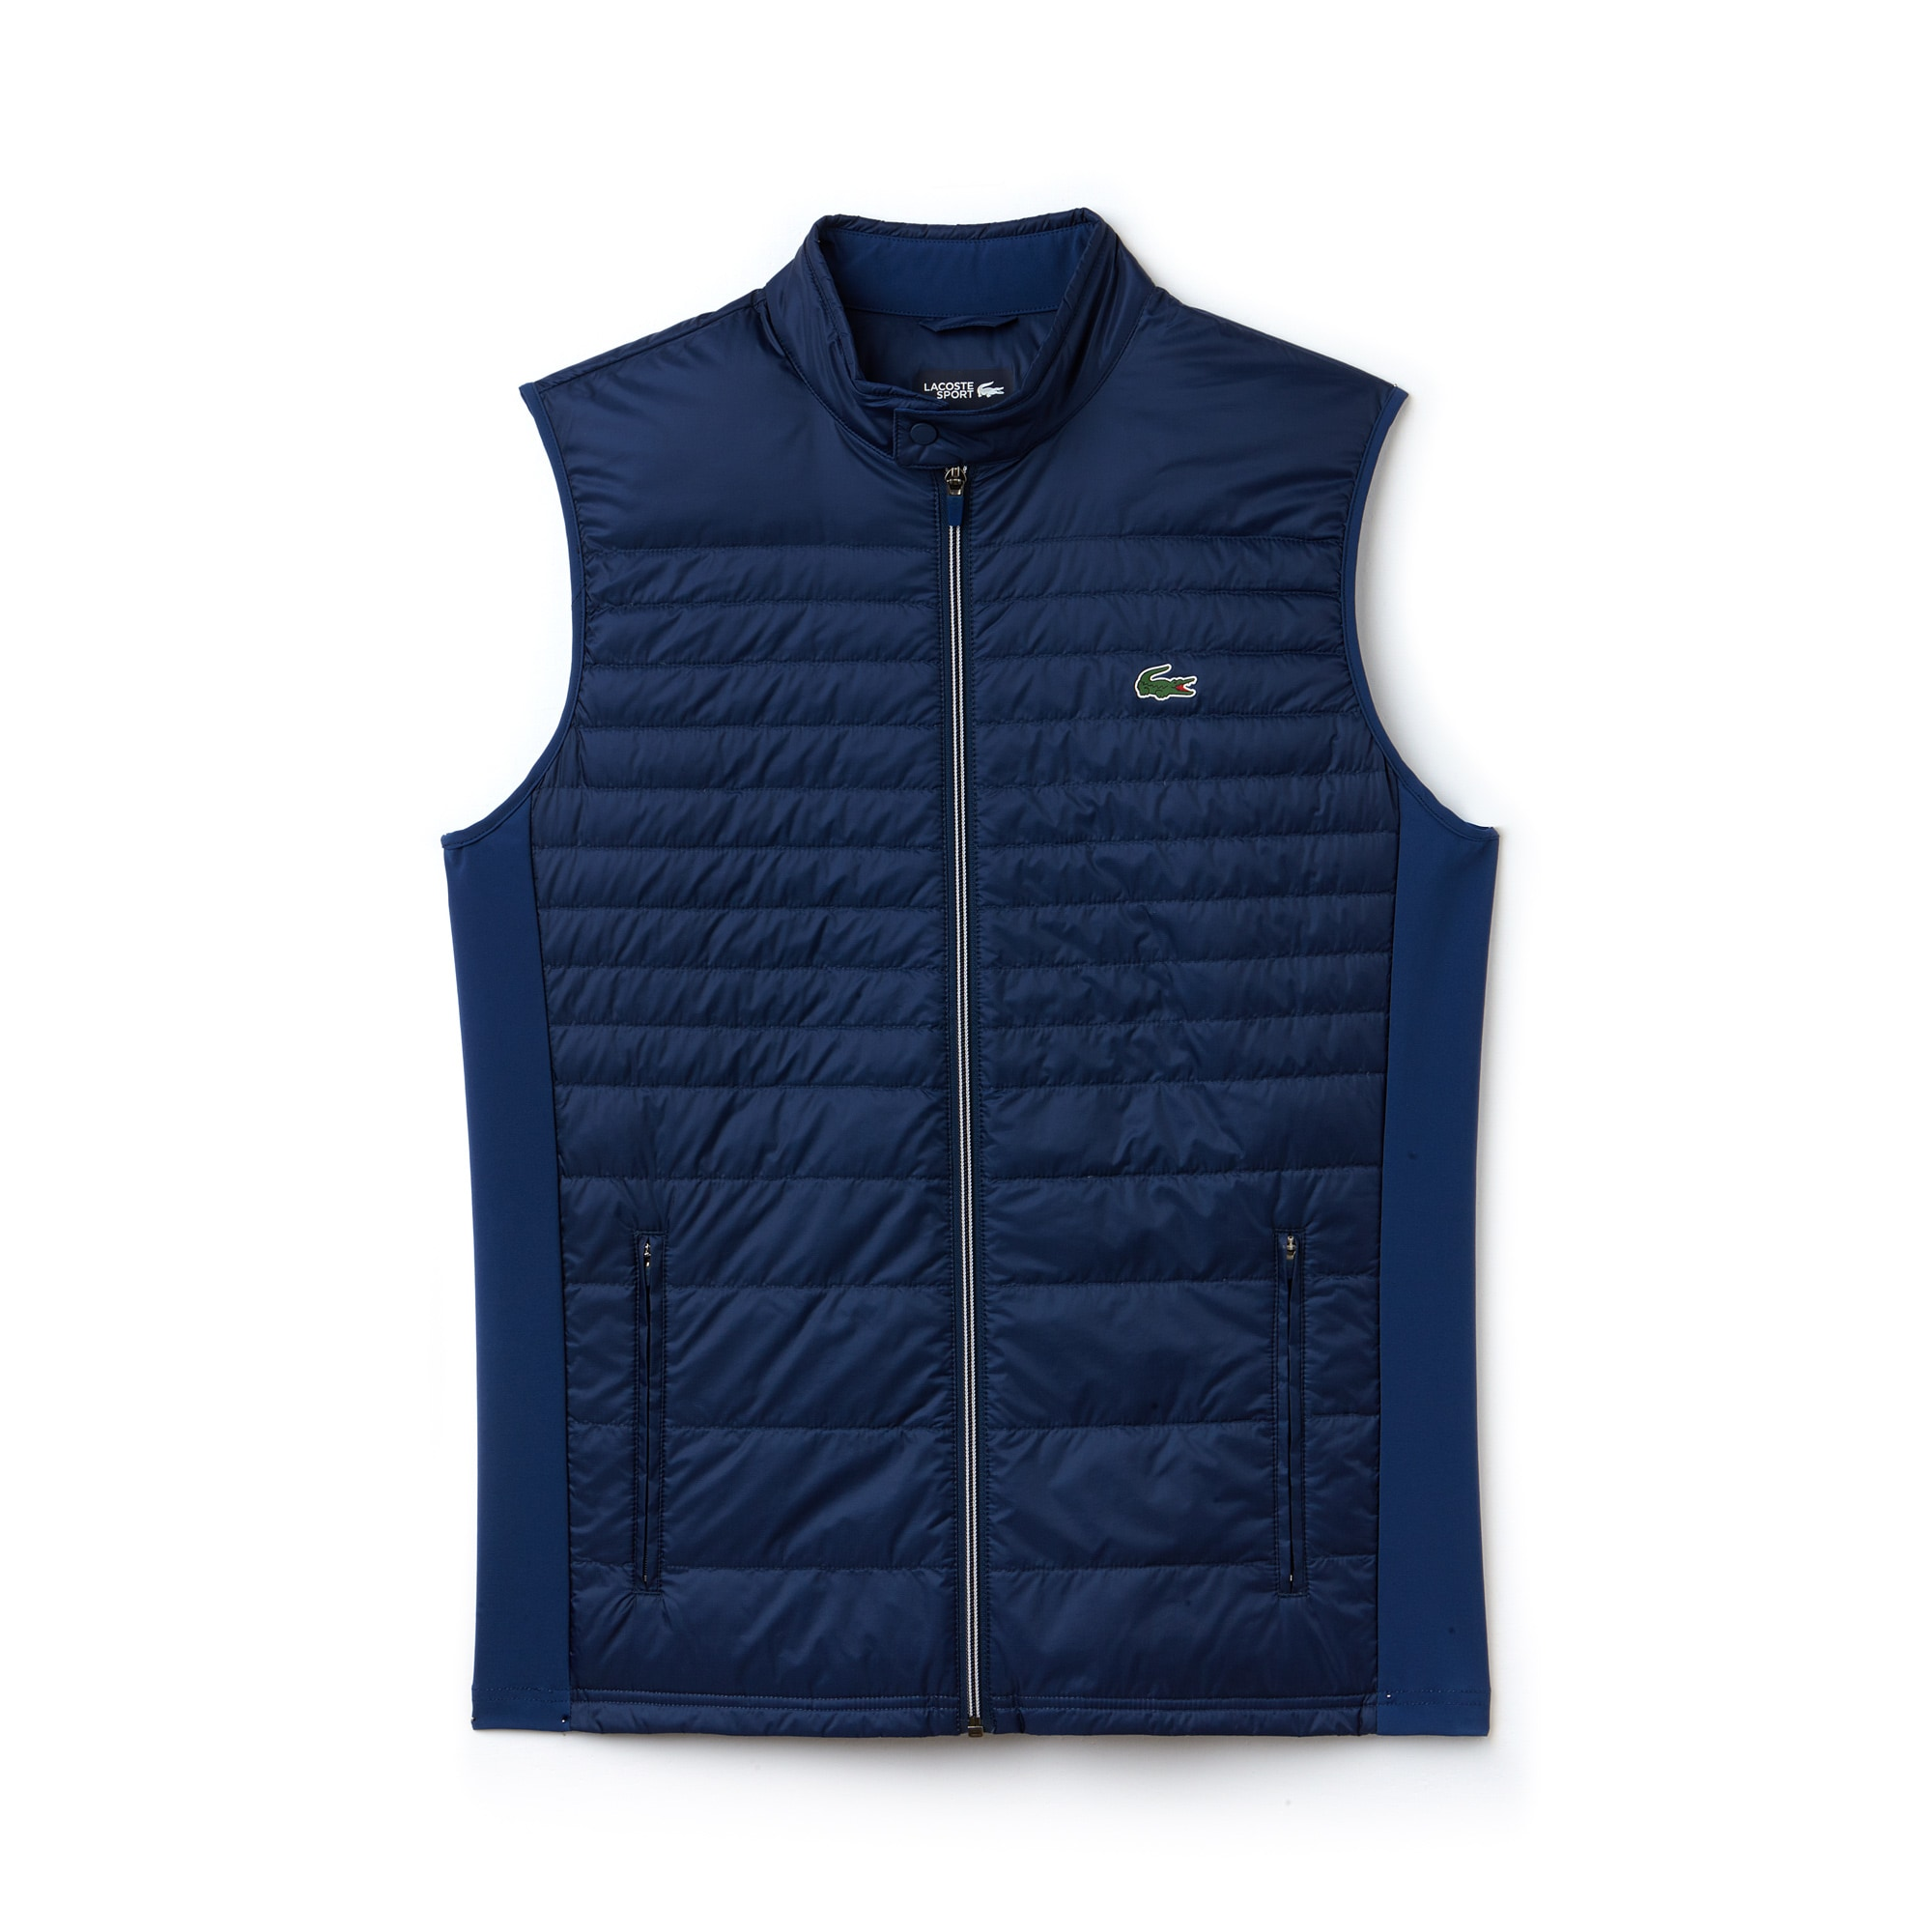 Men's SPORT Water-Resistant Quilted Technical Golf Vest